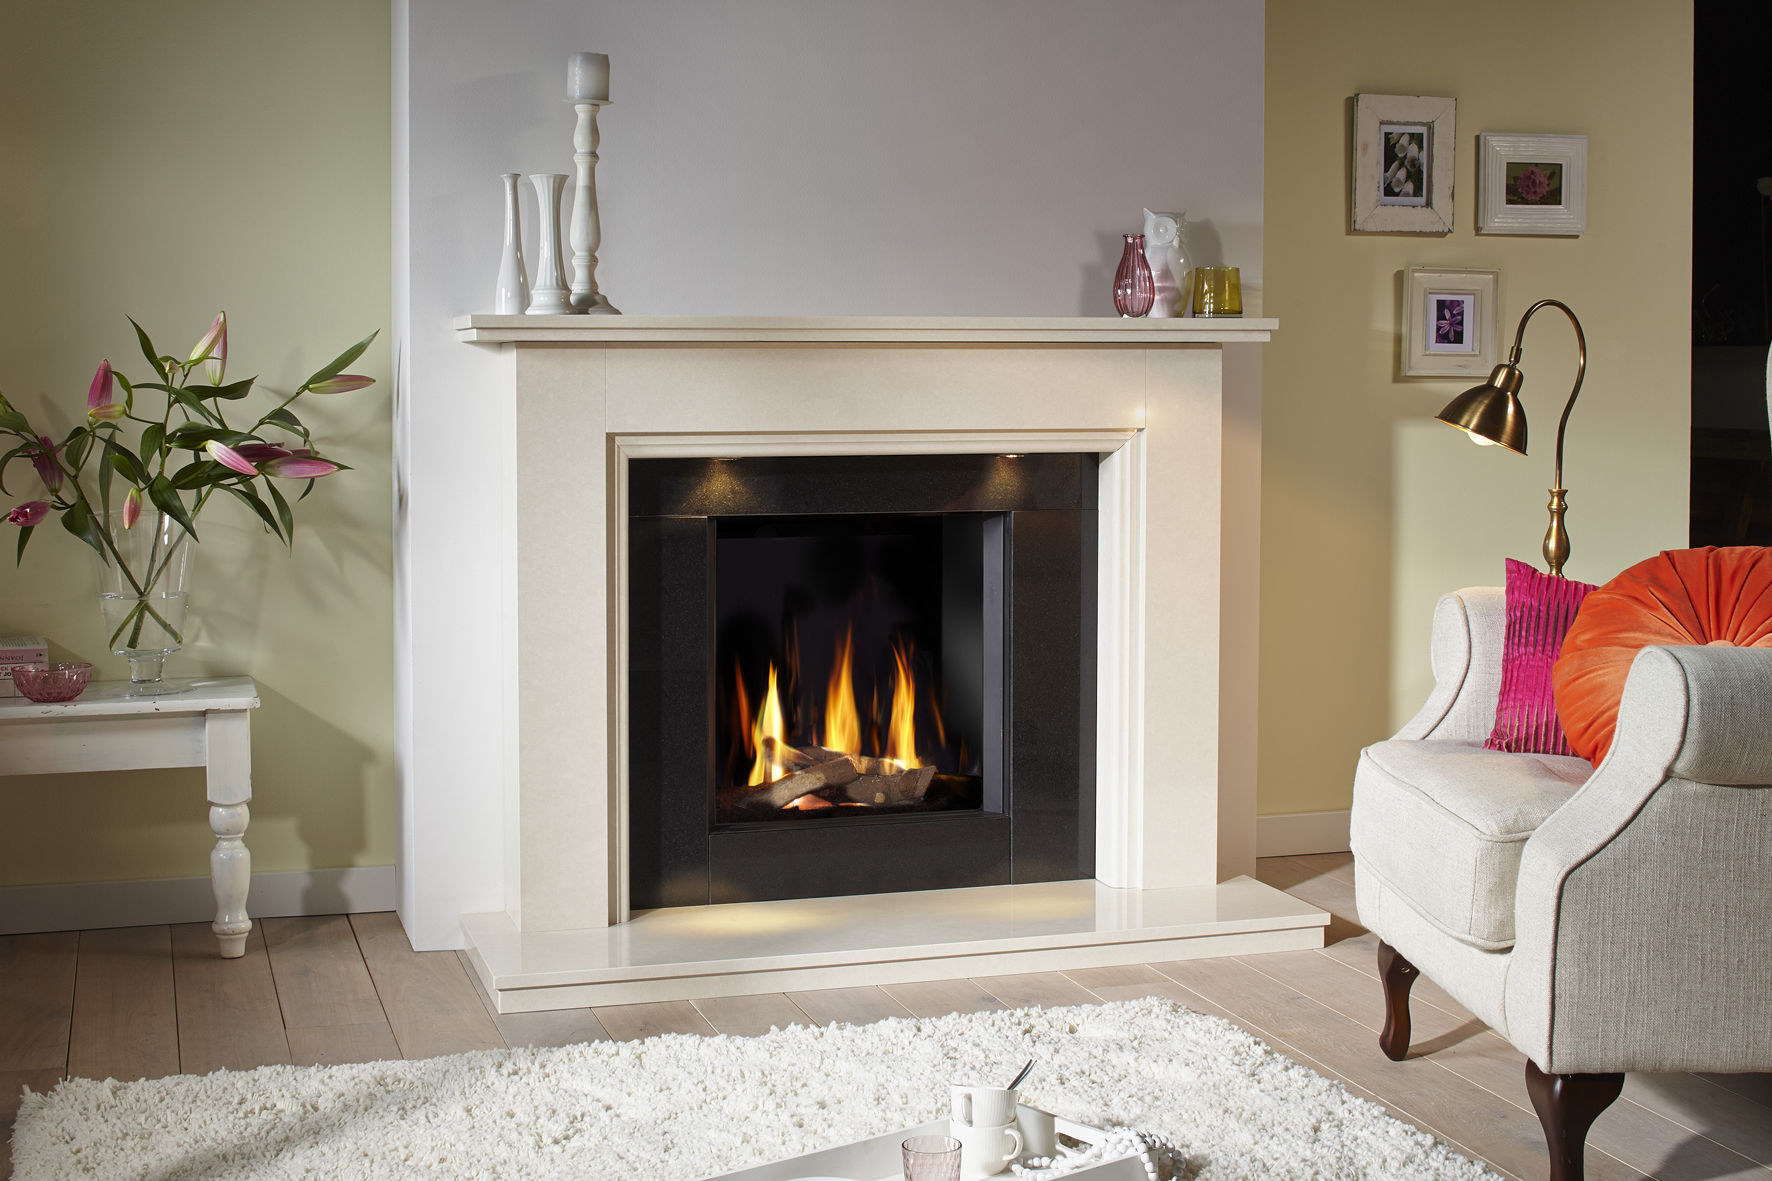 Gas-fireplaces-and-wood-burning. Top 10 Outdated Home Decorating Trends to Avoid in 2021